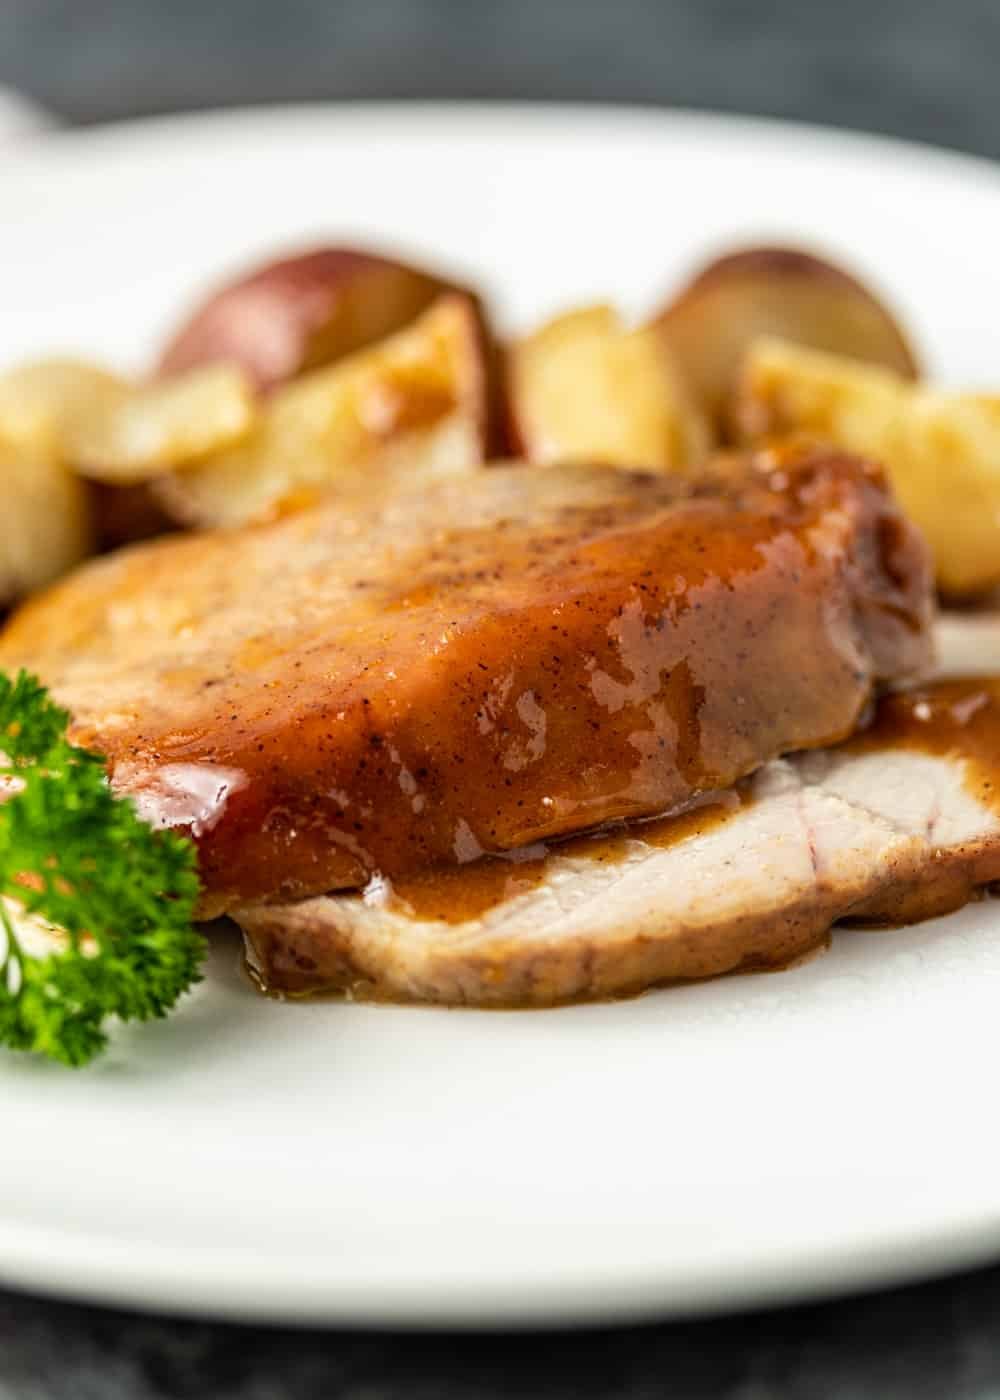 slices of glazed pork loin and roasted potatoes on a white plate